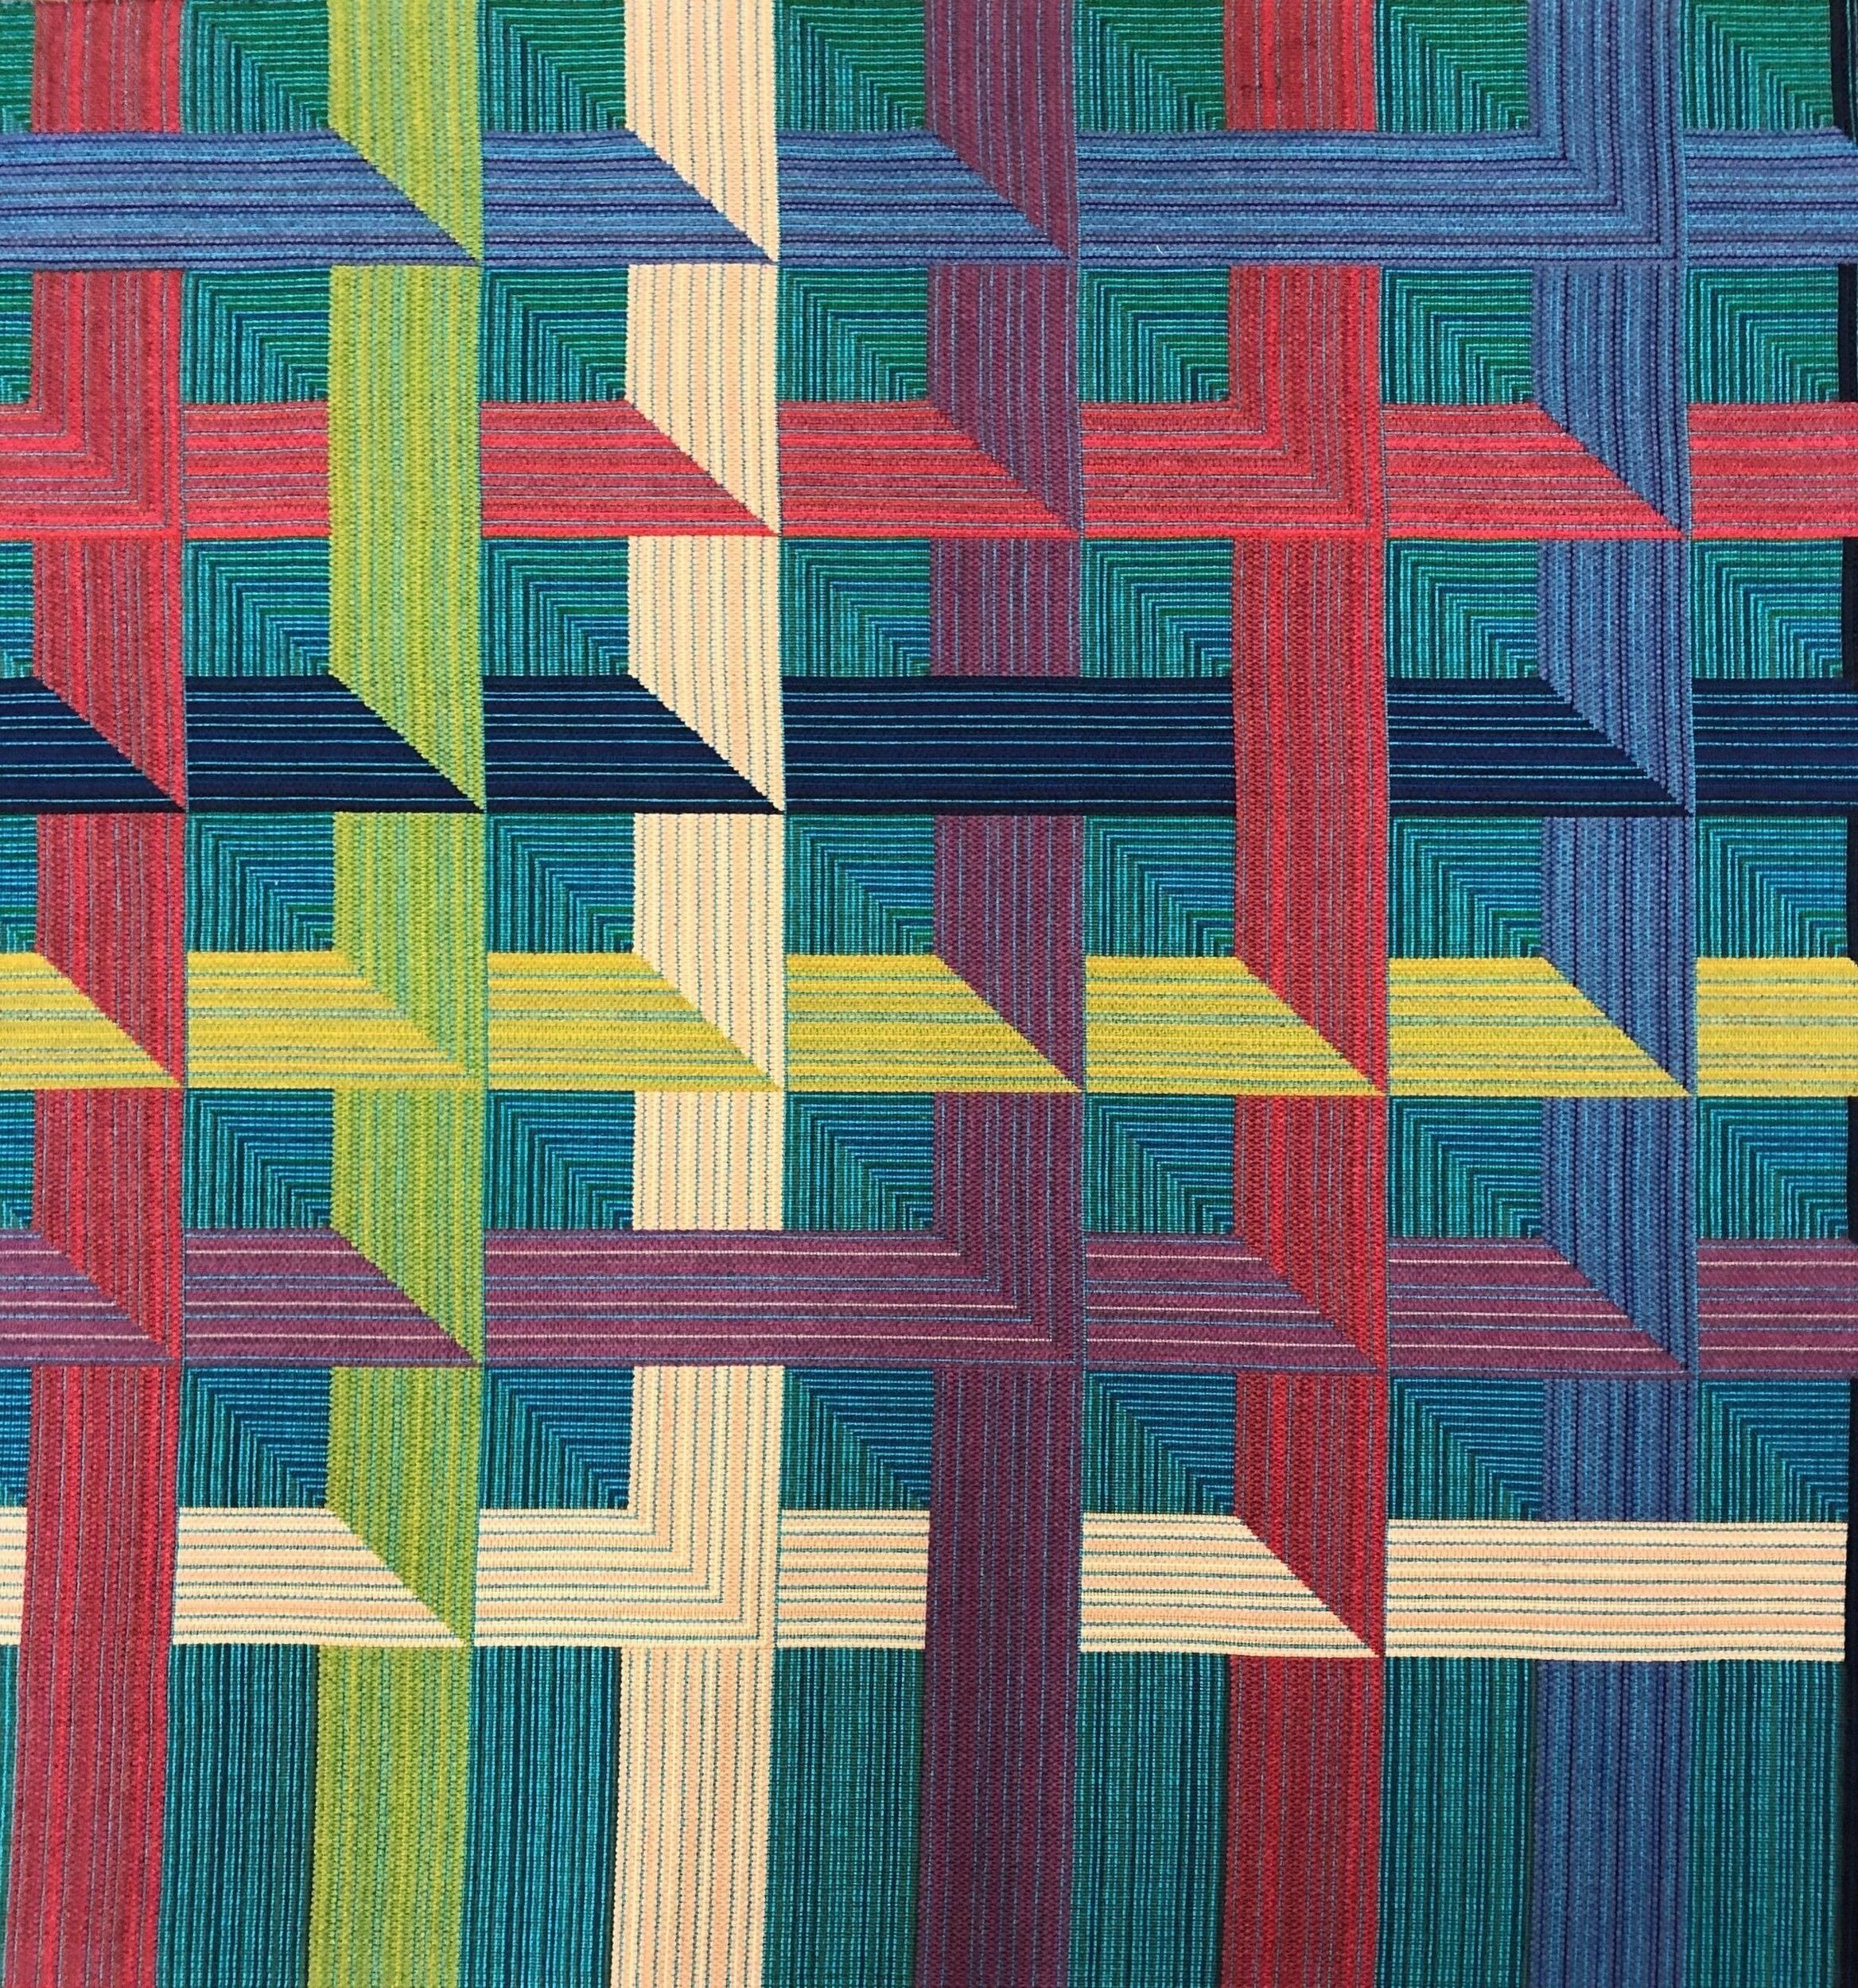 MERGING GRID  Double Beam Jacquard Woven, 2019.  Wool, rayon, nylon.    Designed and woven for Material Technology and Logistics as a showpiece for their 2019 Proposte presentation in Cernobbio, Italy. A custom planted, full width, double beam warp using 24 colors and experimenting with multiple sizes of yarns in the warp and weft. A subtle, multi-directional ombre spans the ten foot vertical repeat in the weft, and the four foot horizontal repeat in the warp. This is overlaid by a bold, multicolor abstracted weave graphic. Structural weave changes add physical depth.